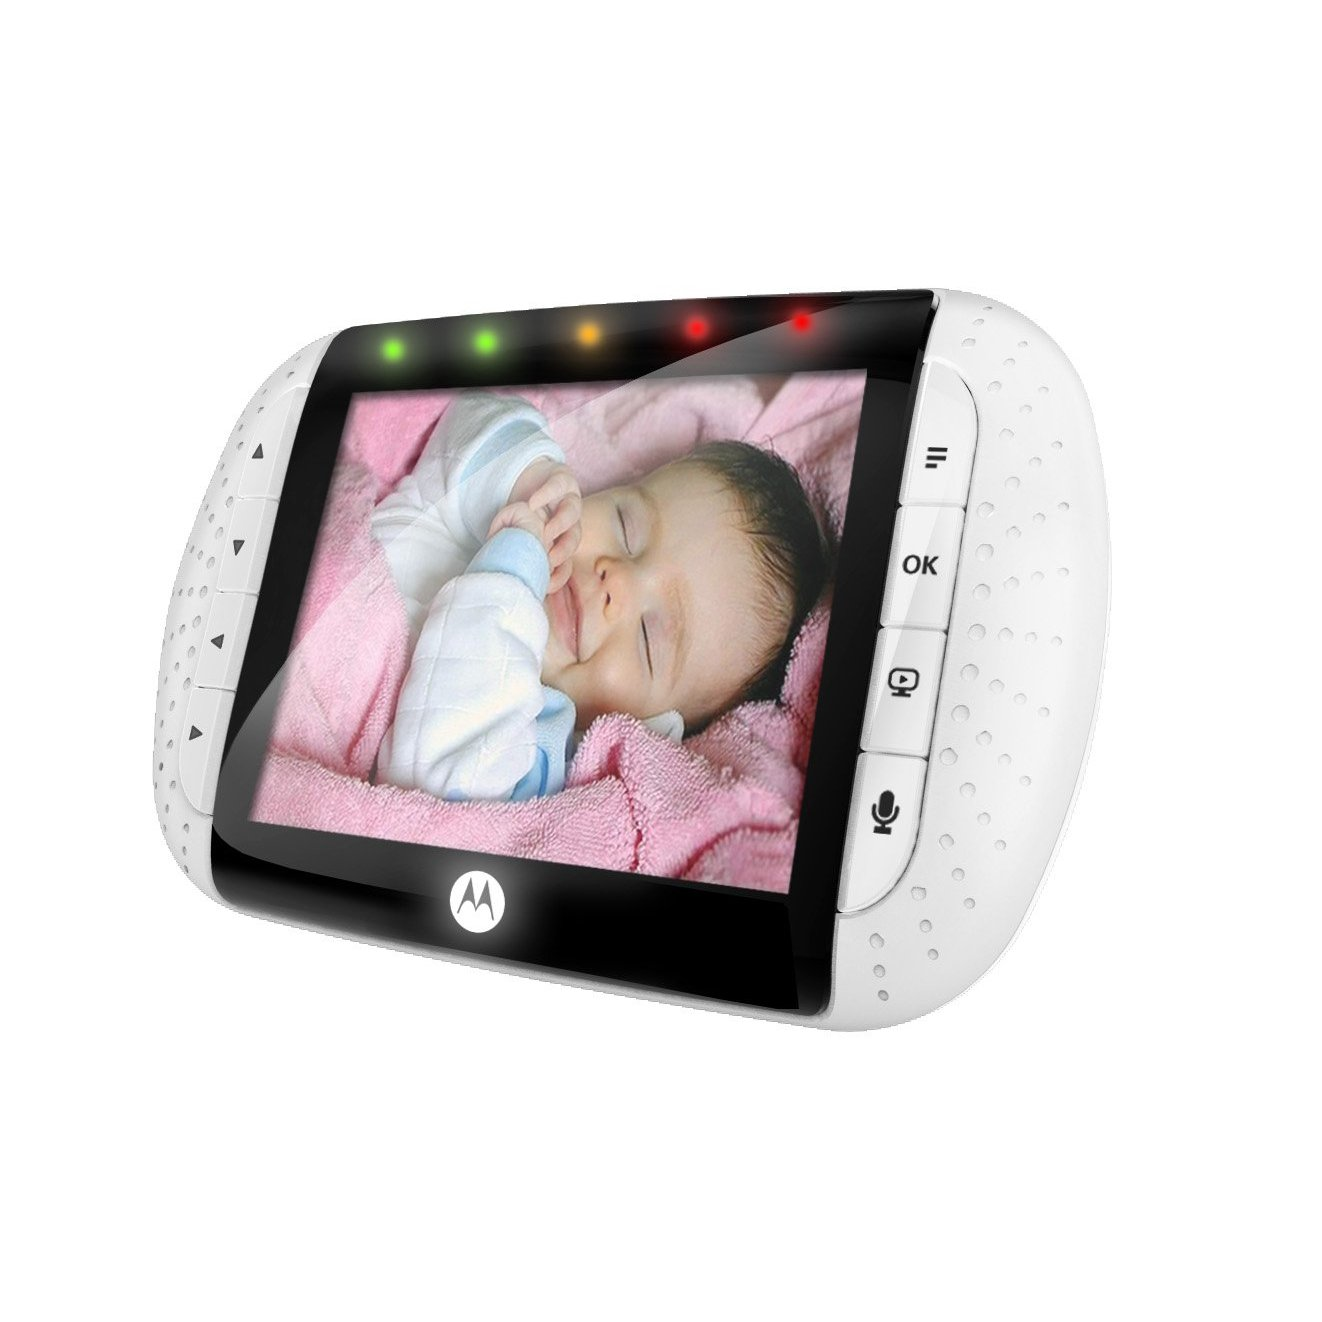 tips and tricks to effective parenting motorola digital video baby monitor w. Black Bedroom Furniture Sets. Home Design Ideas